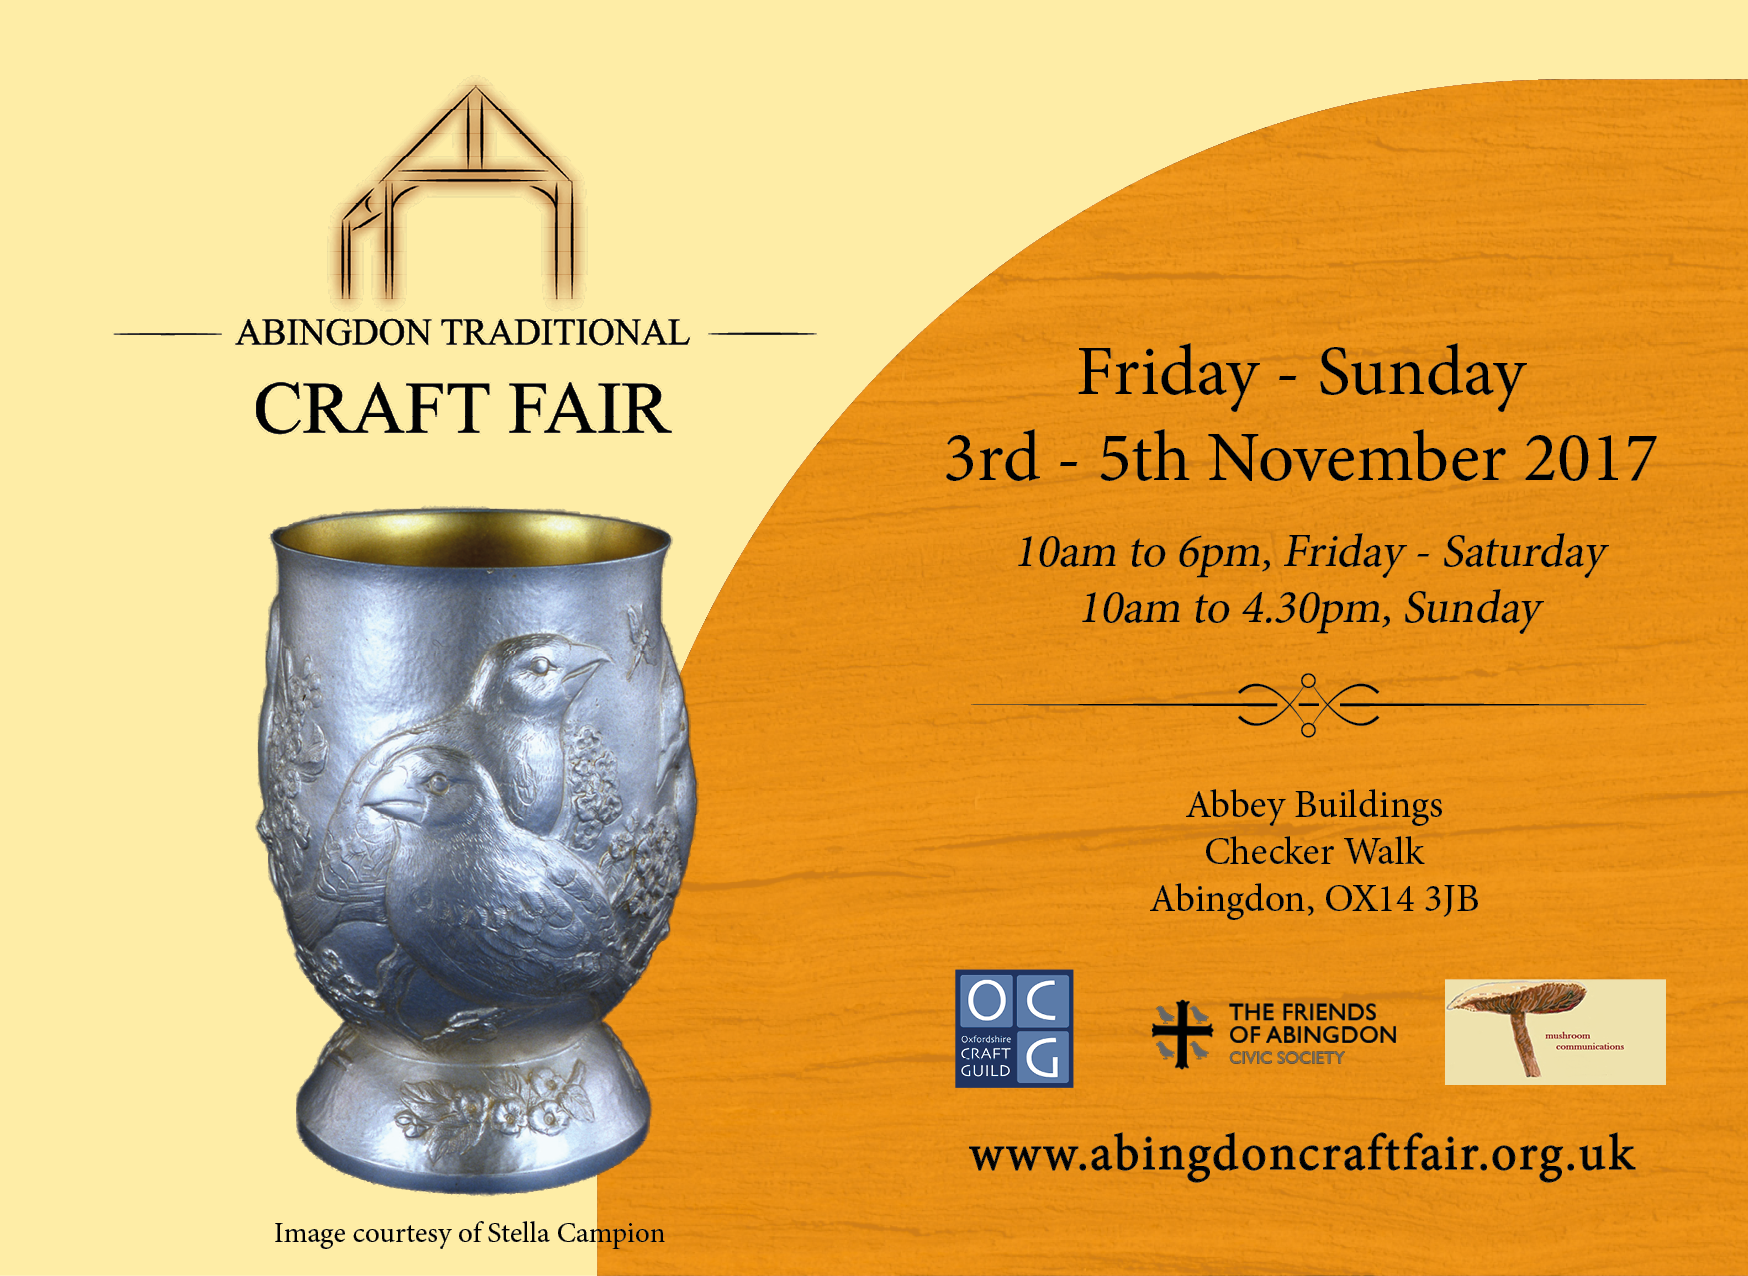 Abingdon Traditional Craft Fair